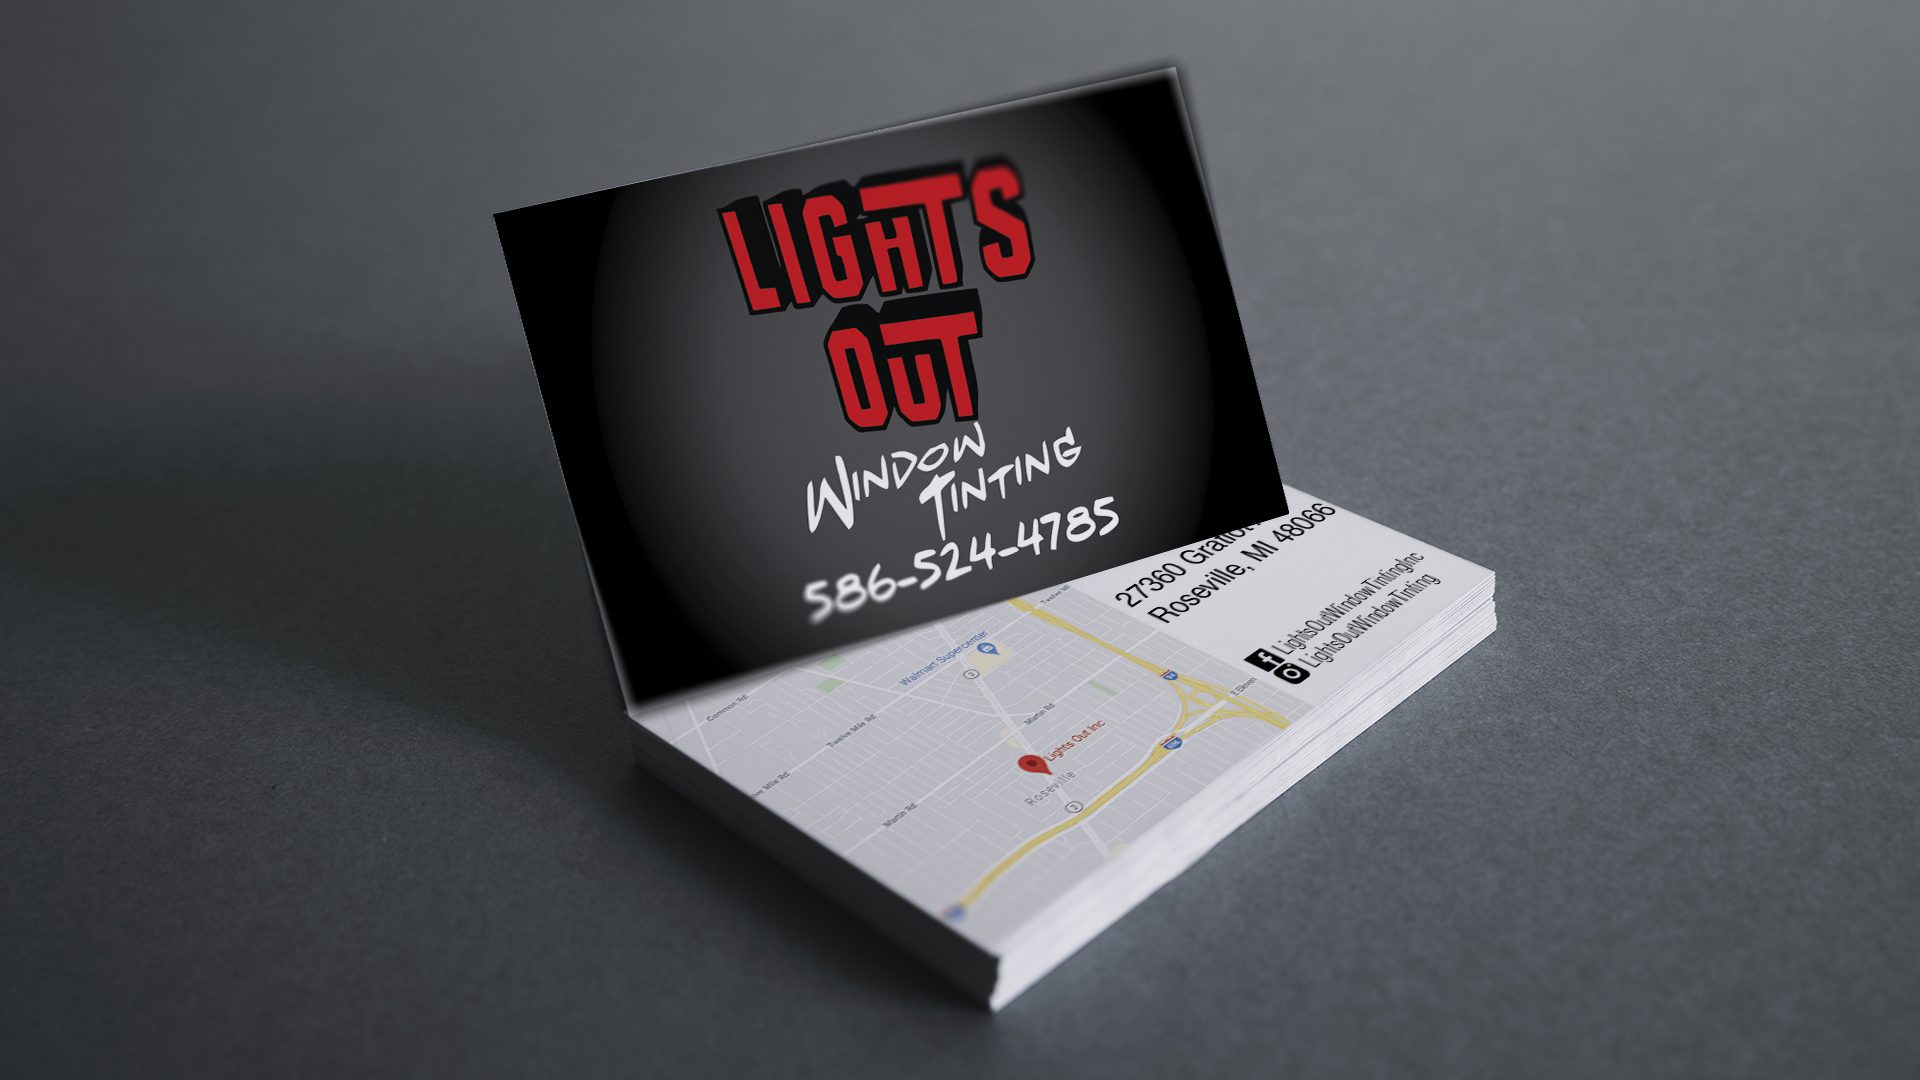 Lights Out Window Tinting - Business Card Mockup V1